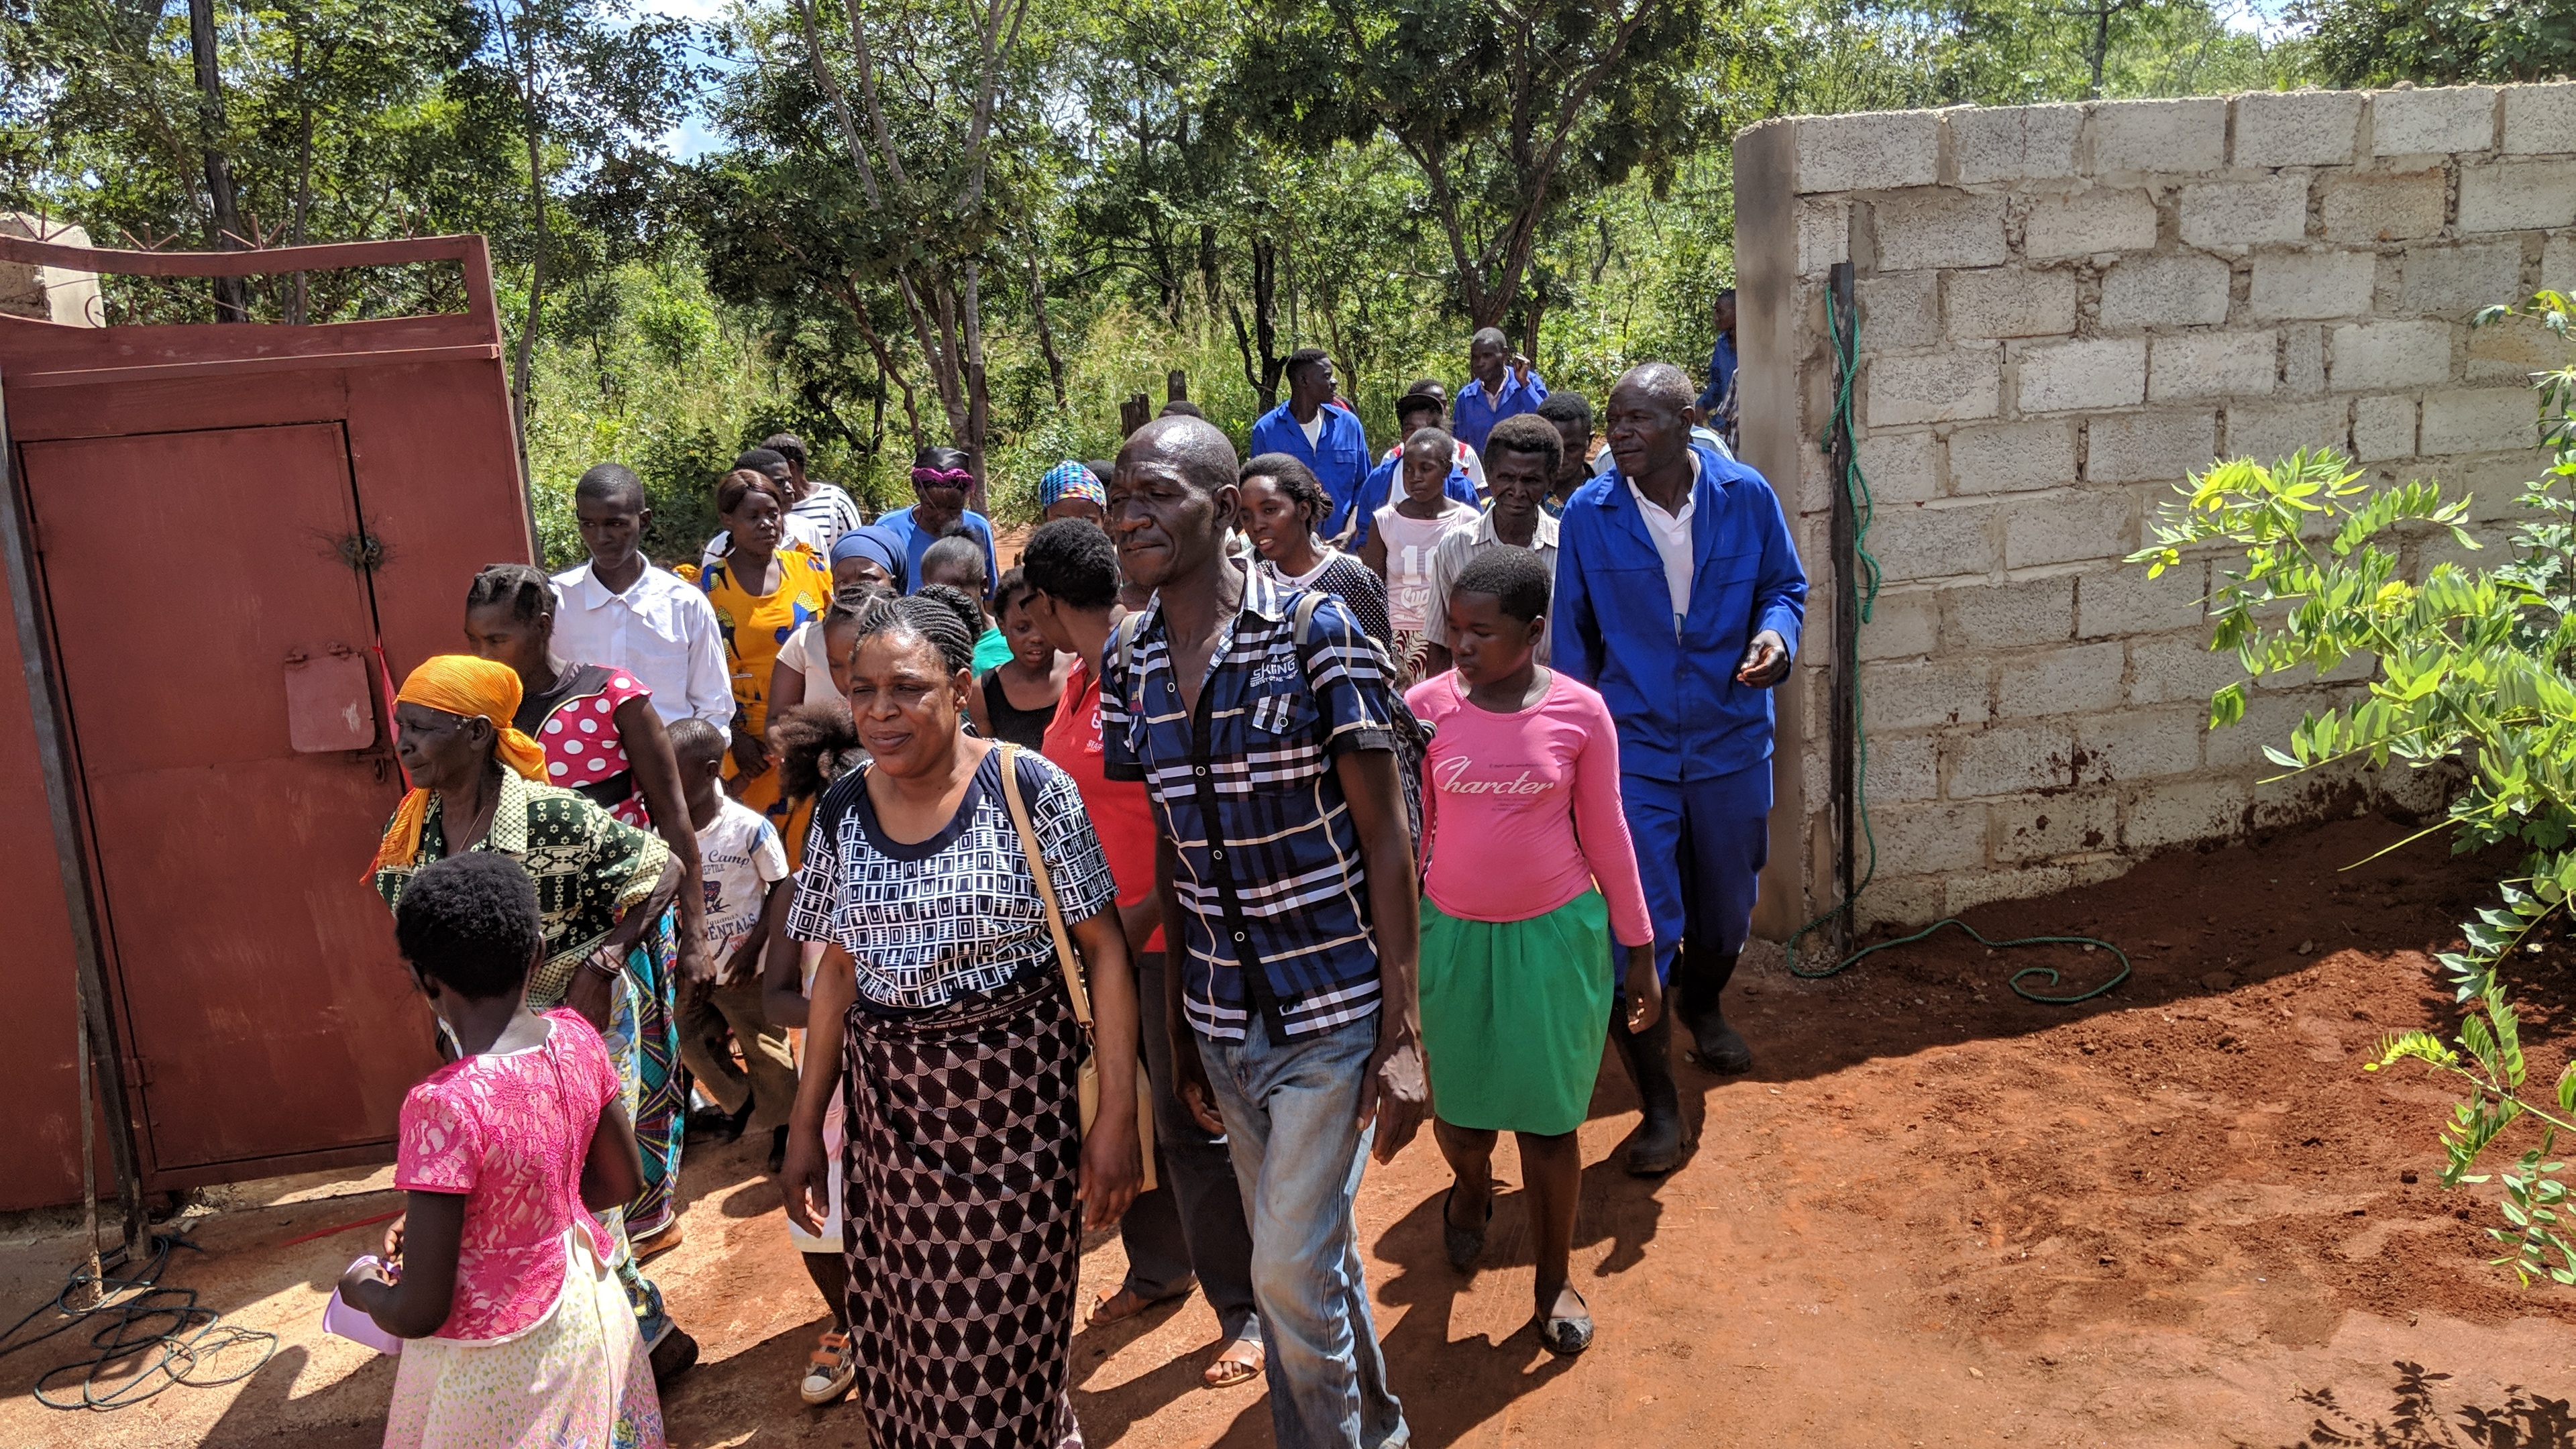 Members enter the church property on the day the wall was dedicated on April 21, 2019.